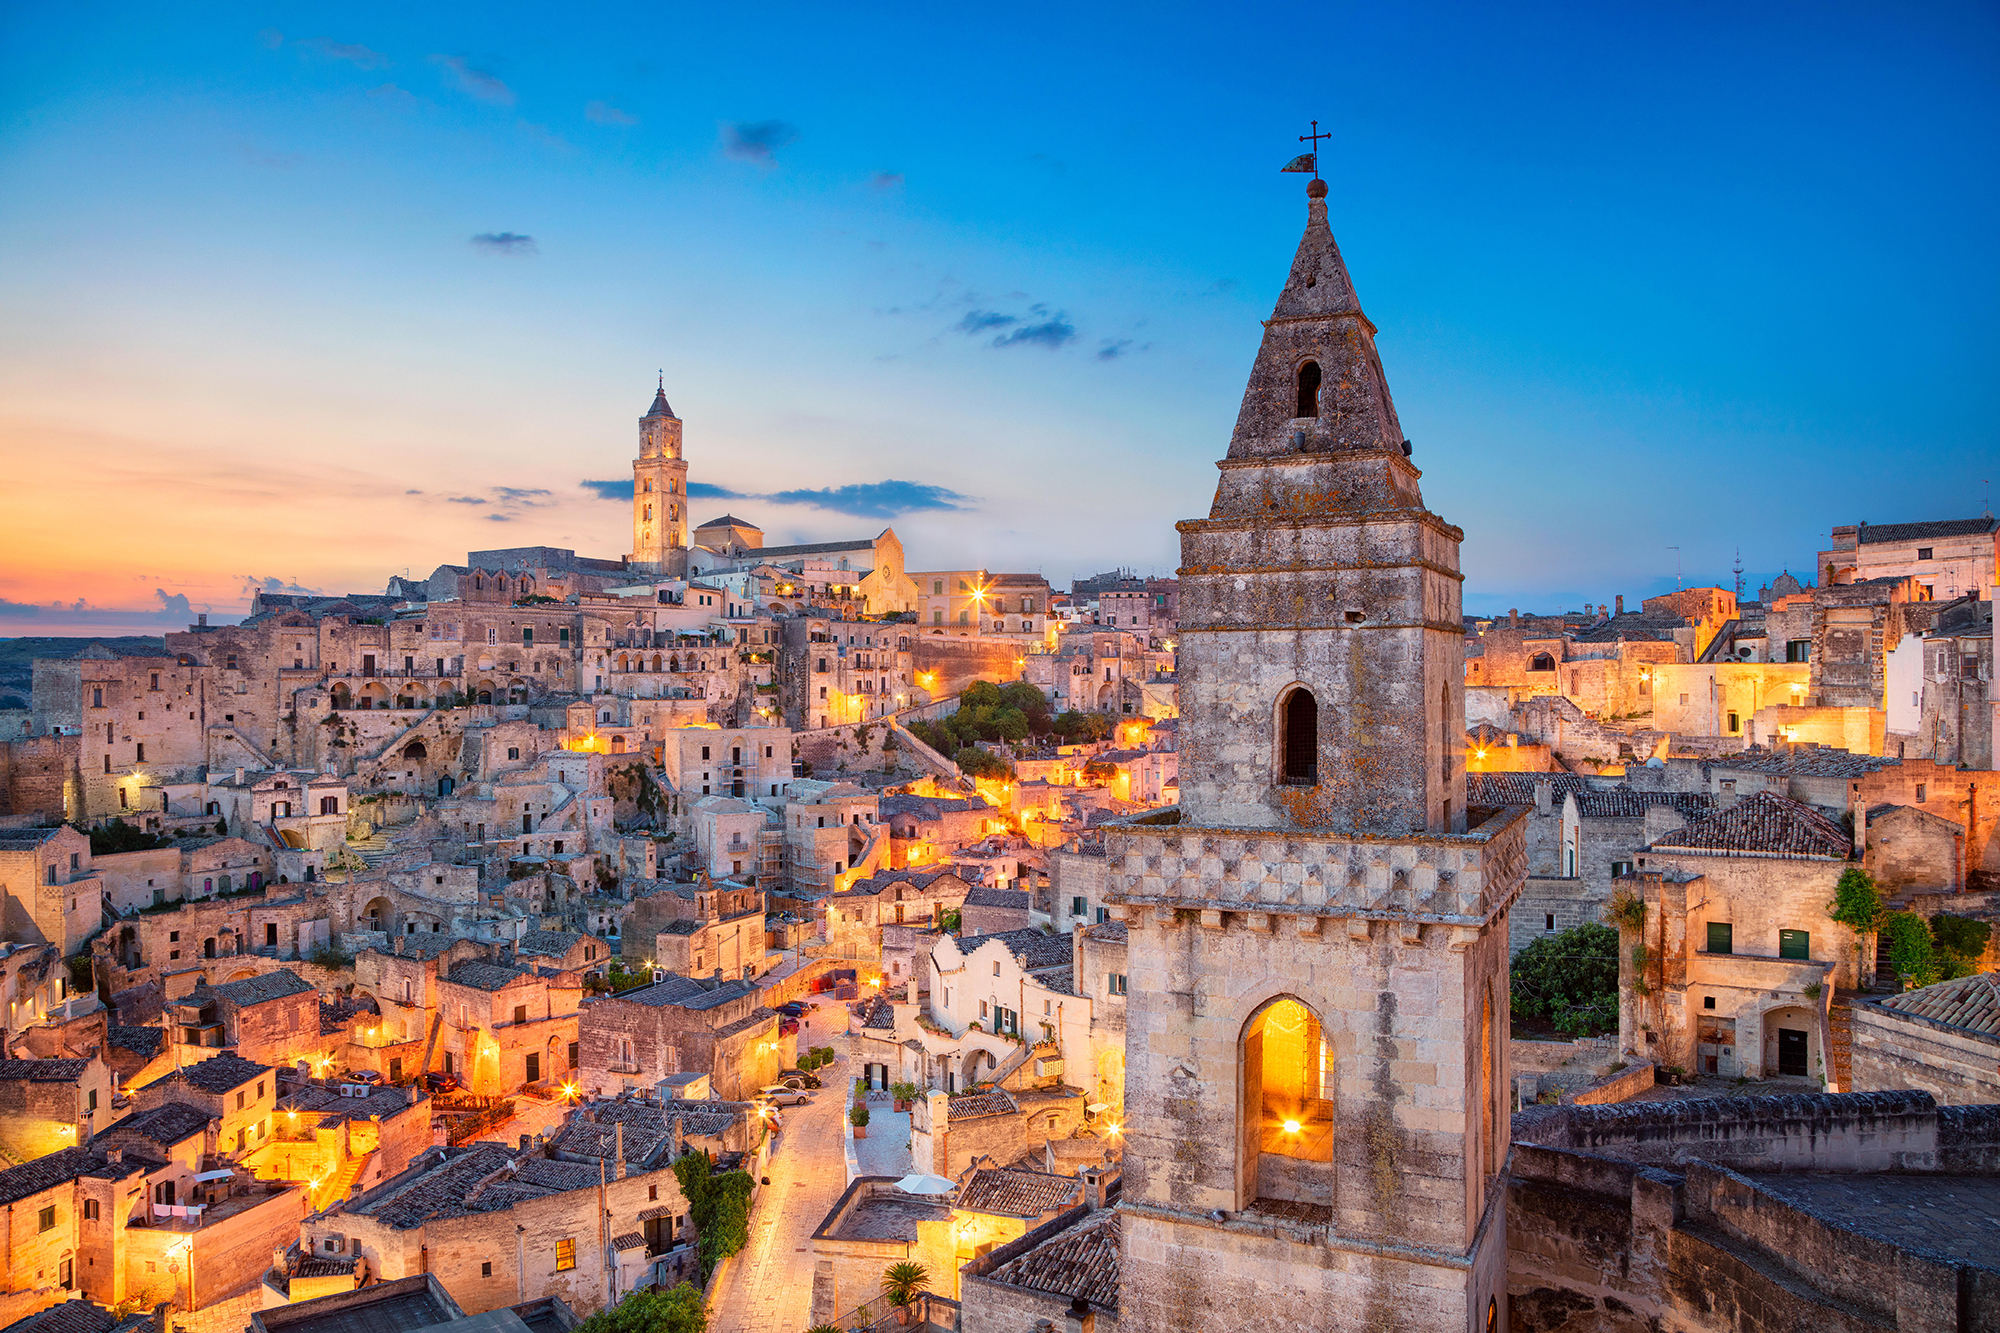 Hilltop town of Matera Italy with UNESCO heritage caves